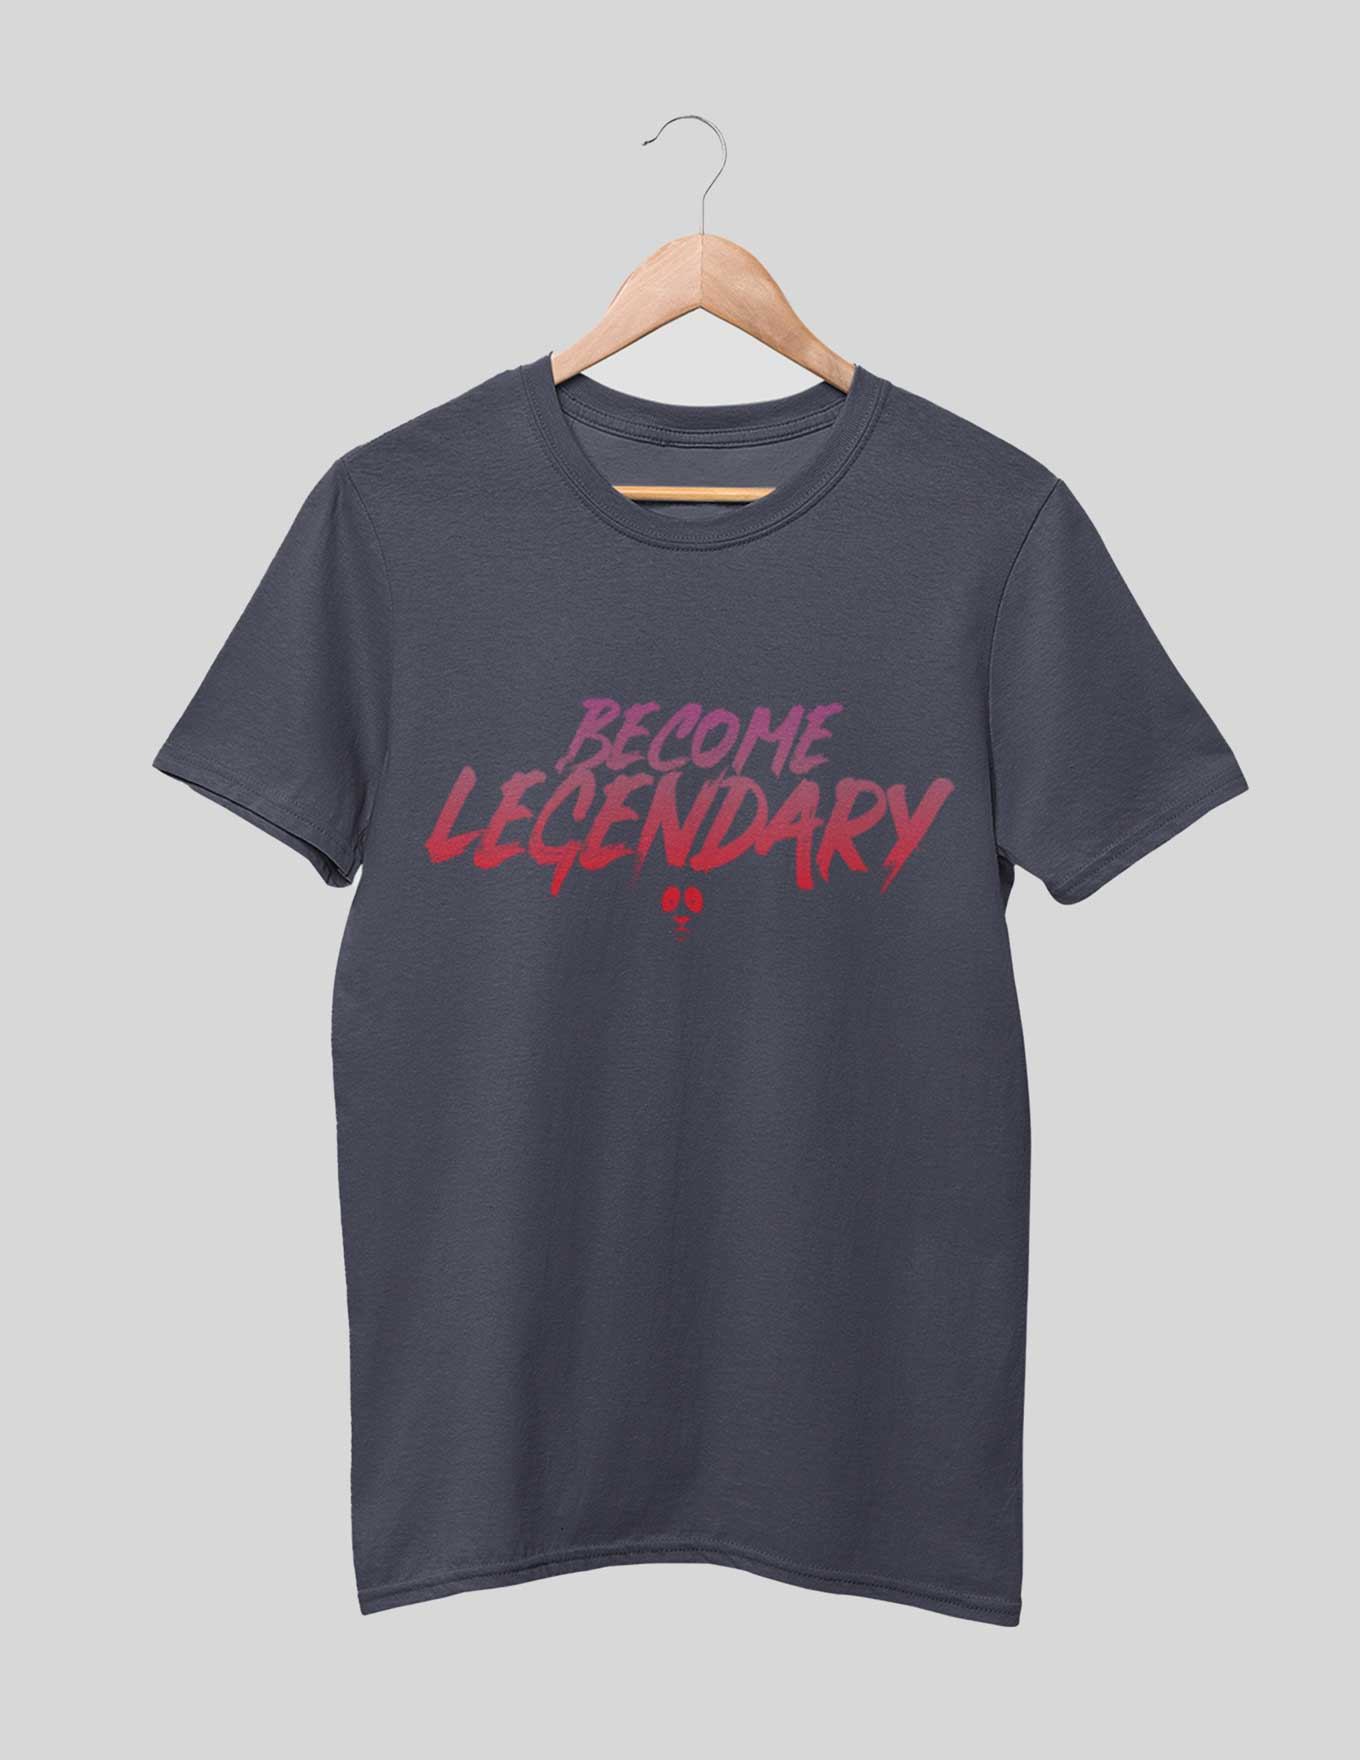 Become Legendary Men's Tee